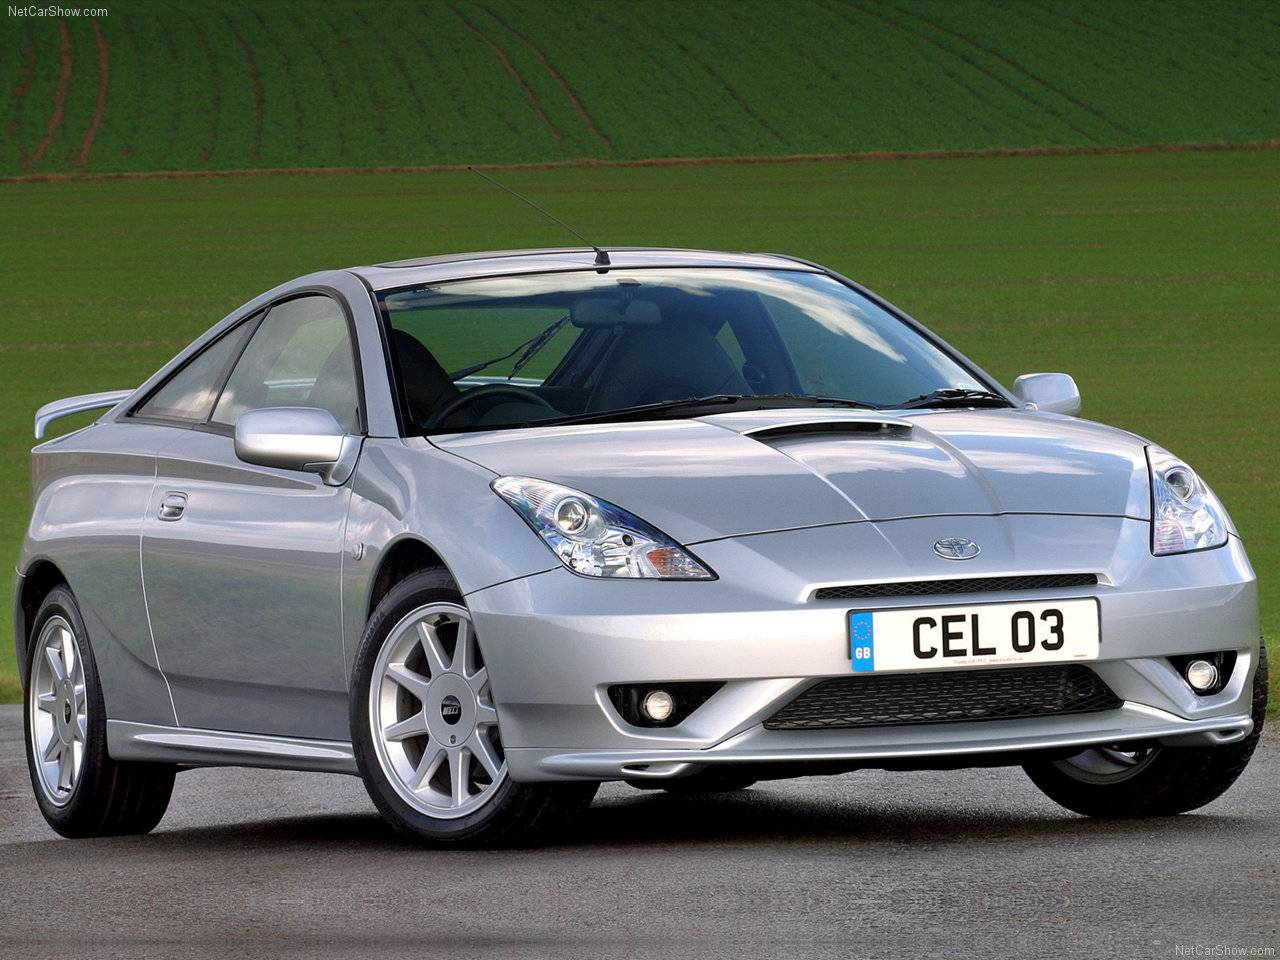 Toyota Celica Wallpaper 25812 Hd Wallpapers in Cars   Imagescicom 1280x960